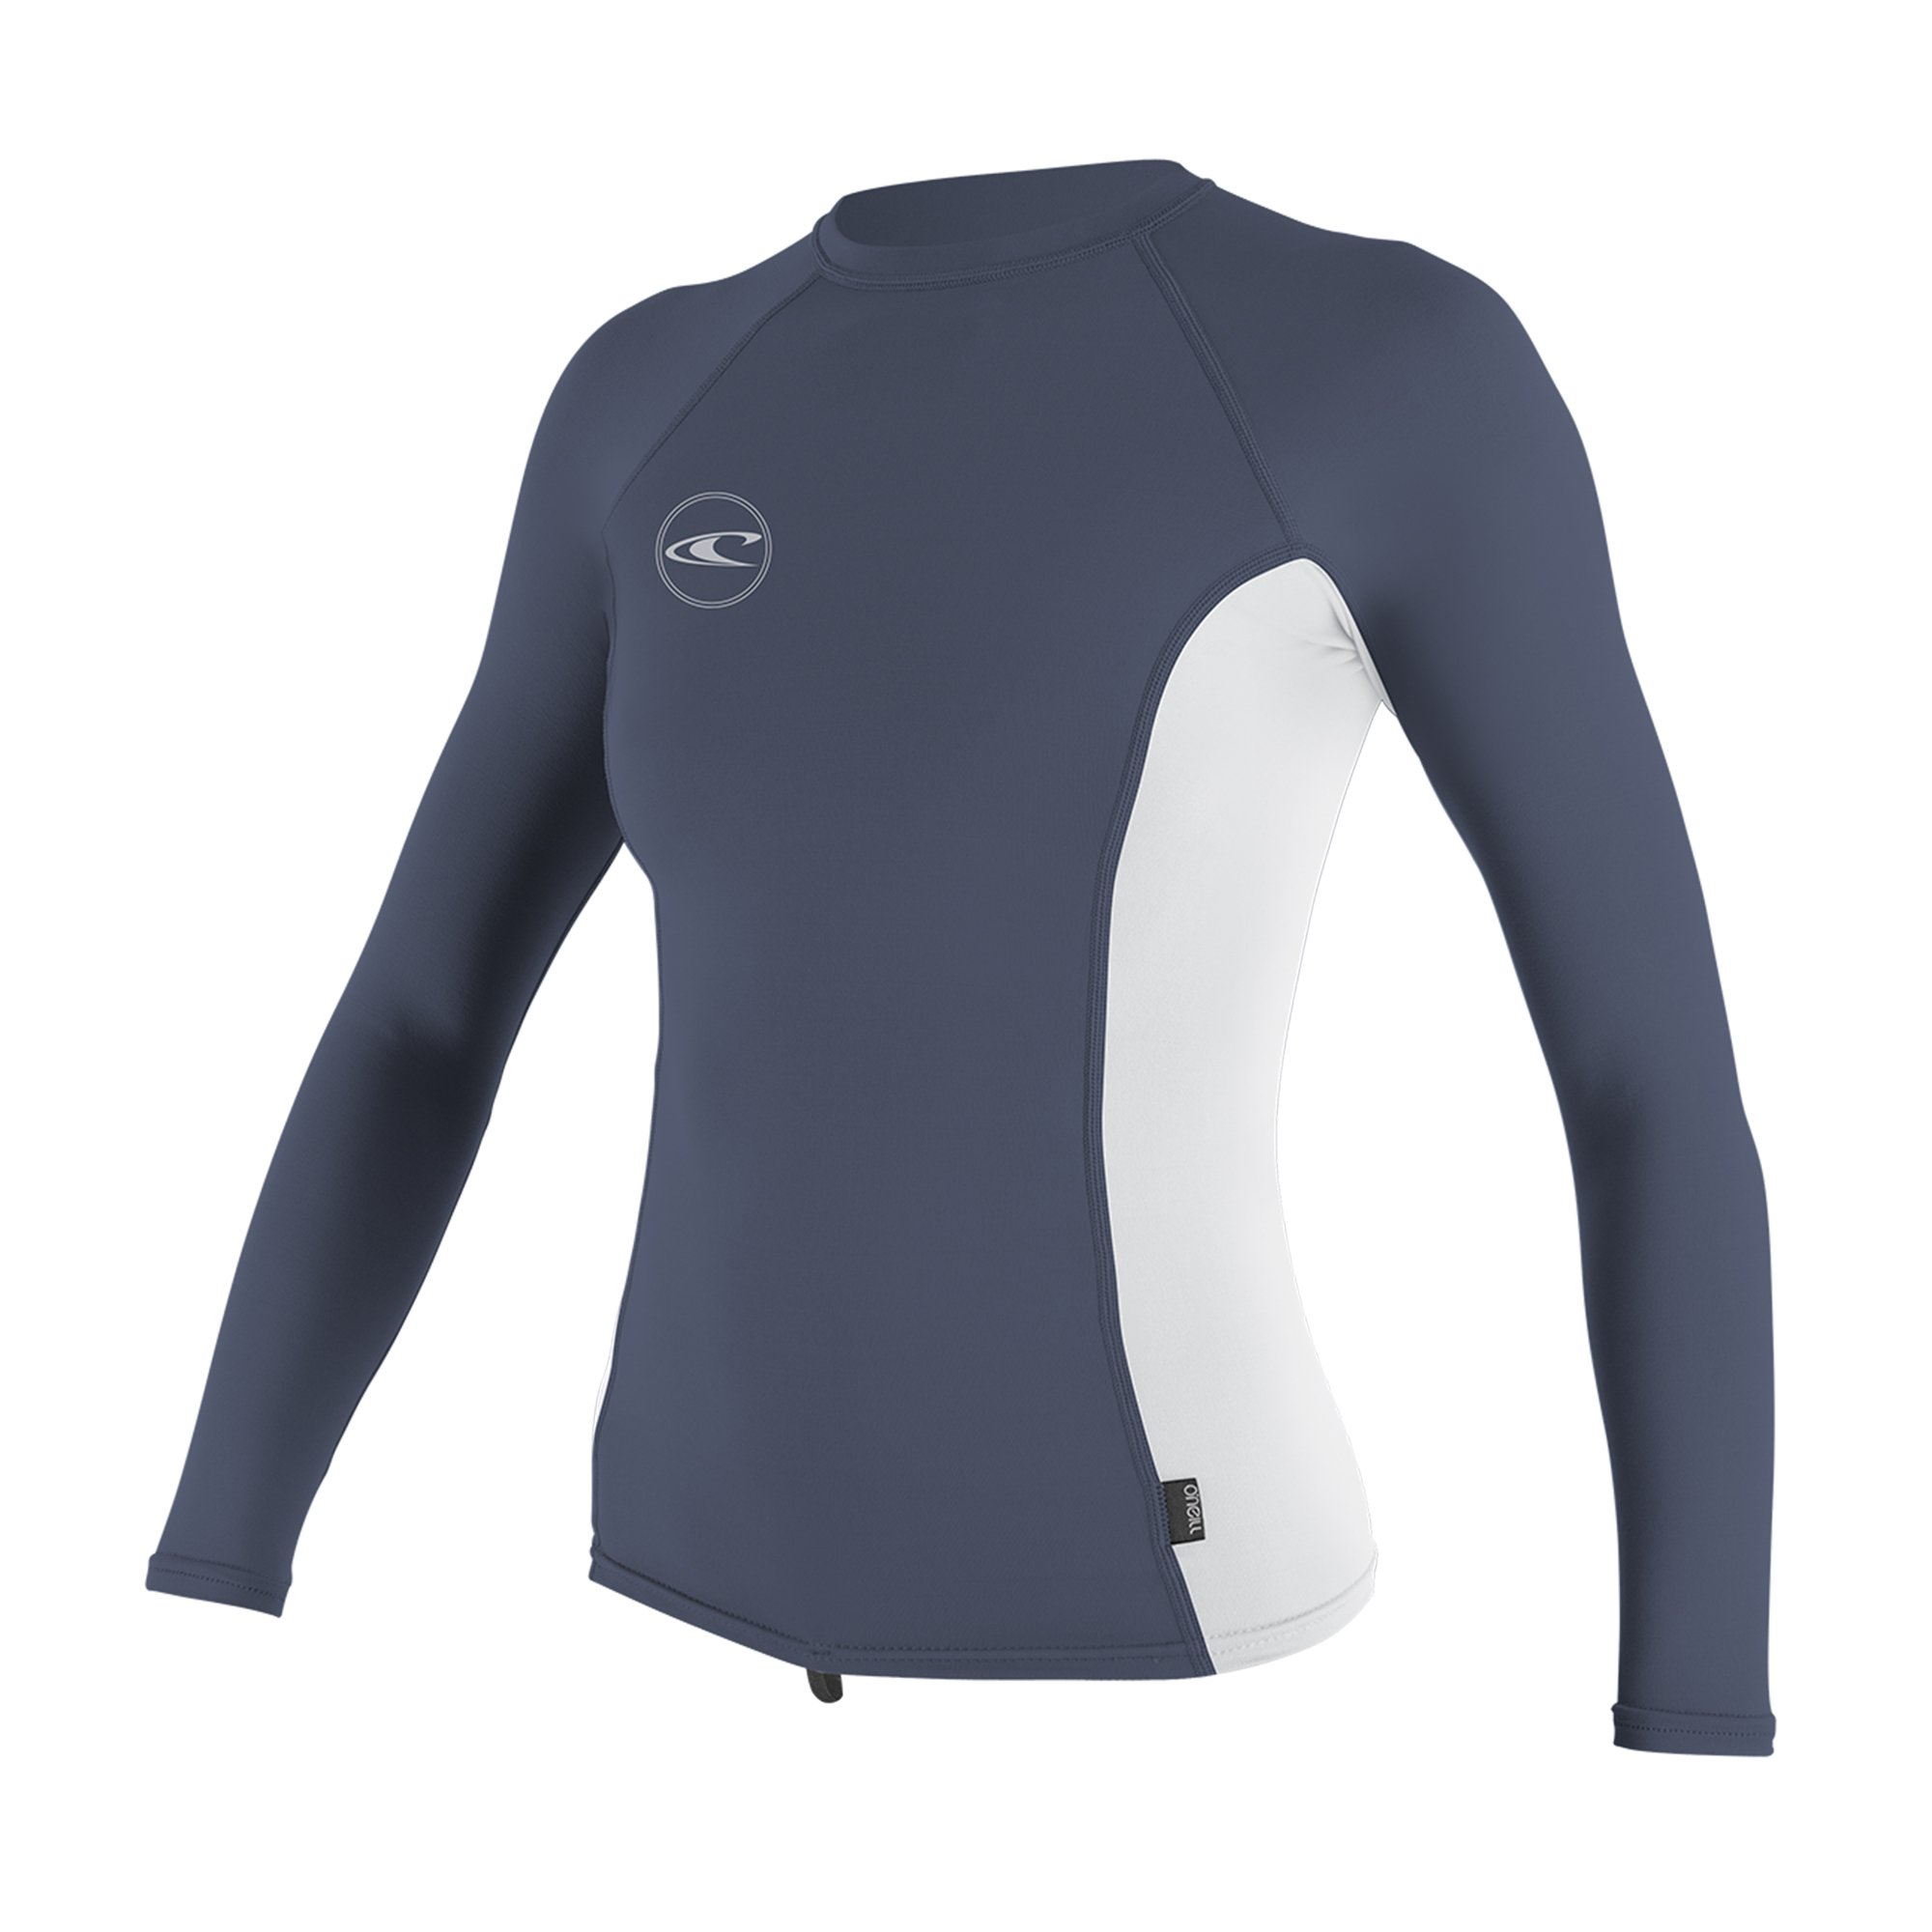 O'NEILL Oneill Womens Basic Long Sleeve Rash Guard - Mist White Mist, Medium by O'NEILL